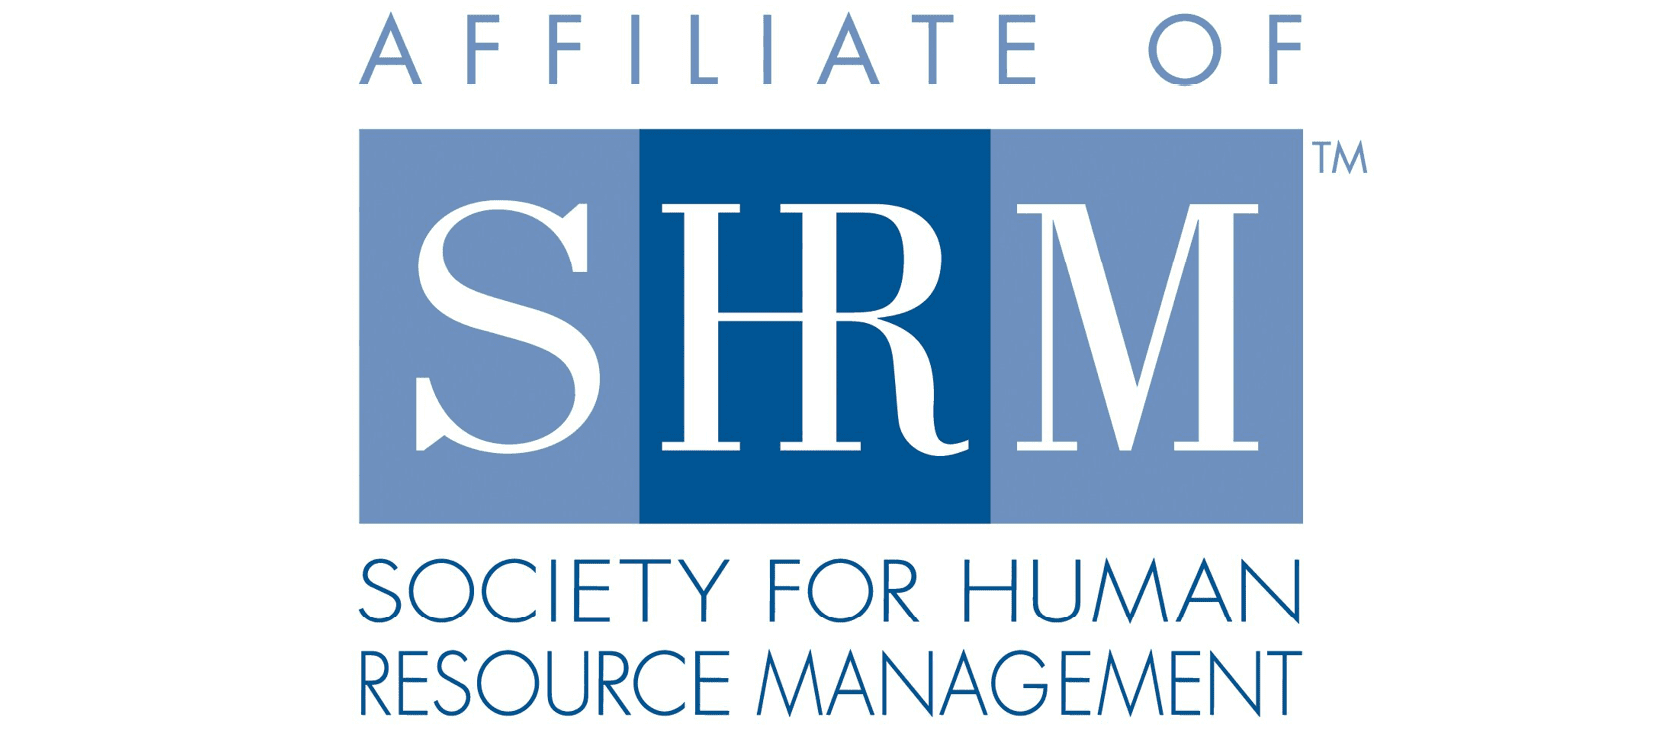 Cypress Employment Society For Human Resource Management Affiliate